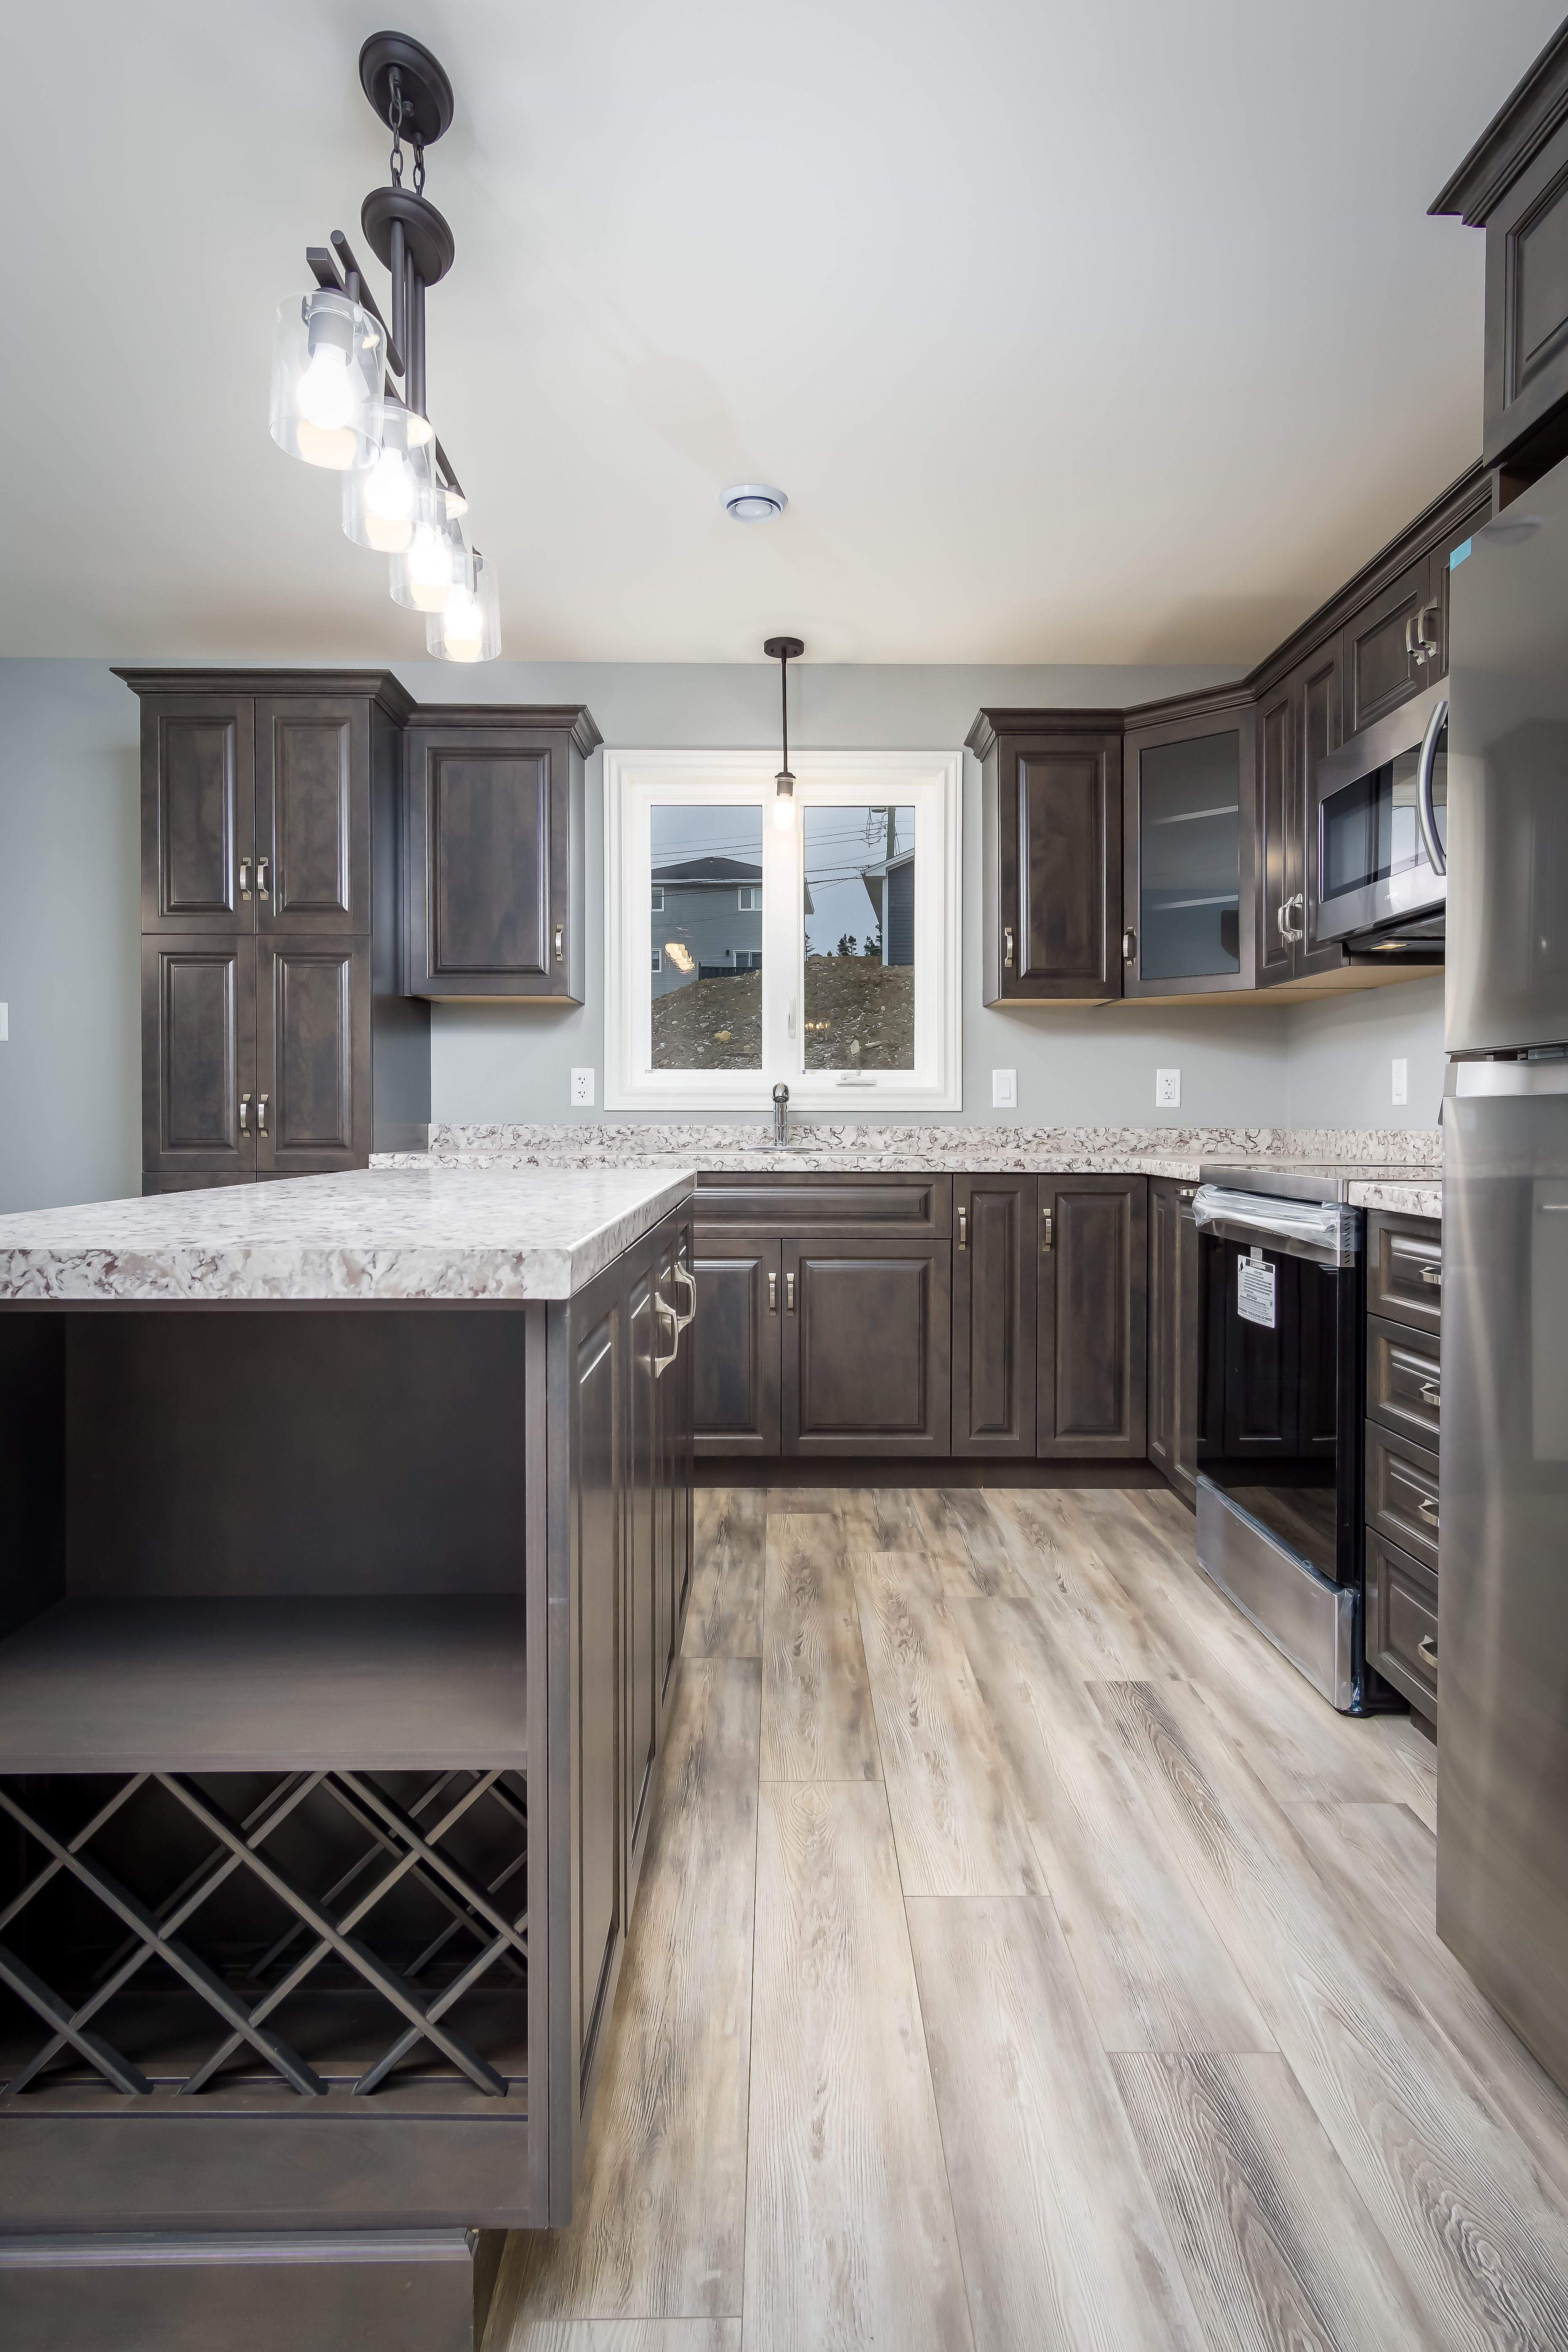 Great Use Of Space Including A Wine Rack In The Island Of This Brand New Kitchen Kitchen Cabinet Wine Rack Wine Rack Wall Wine Rack